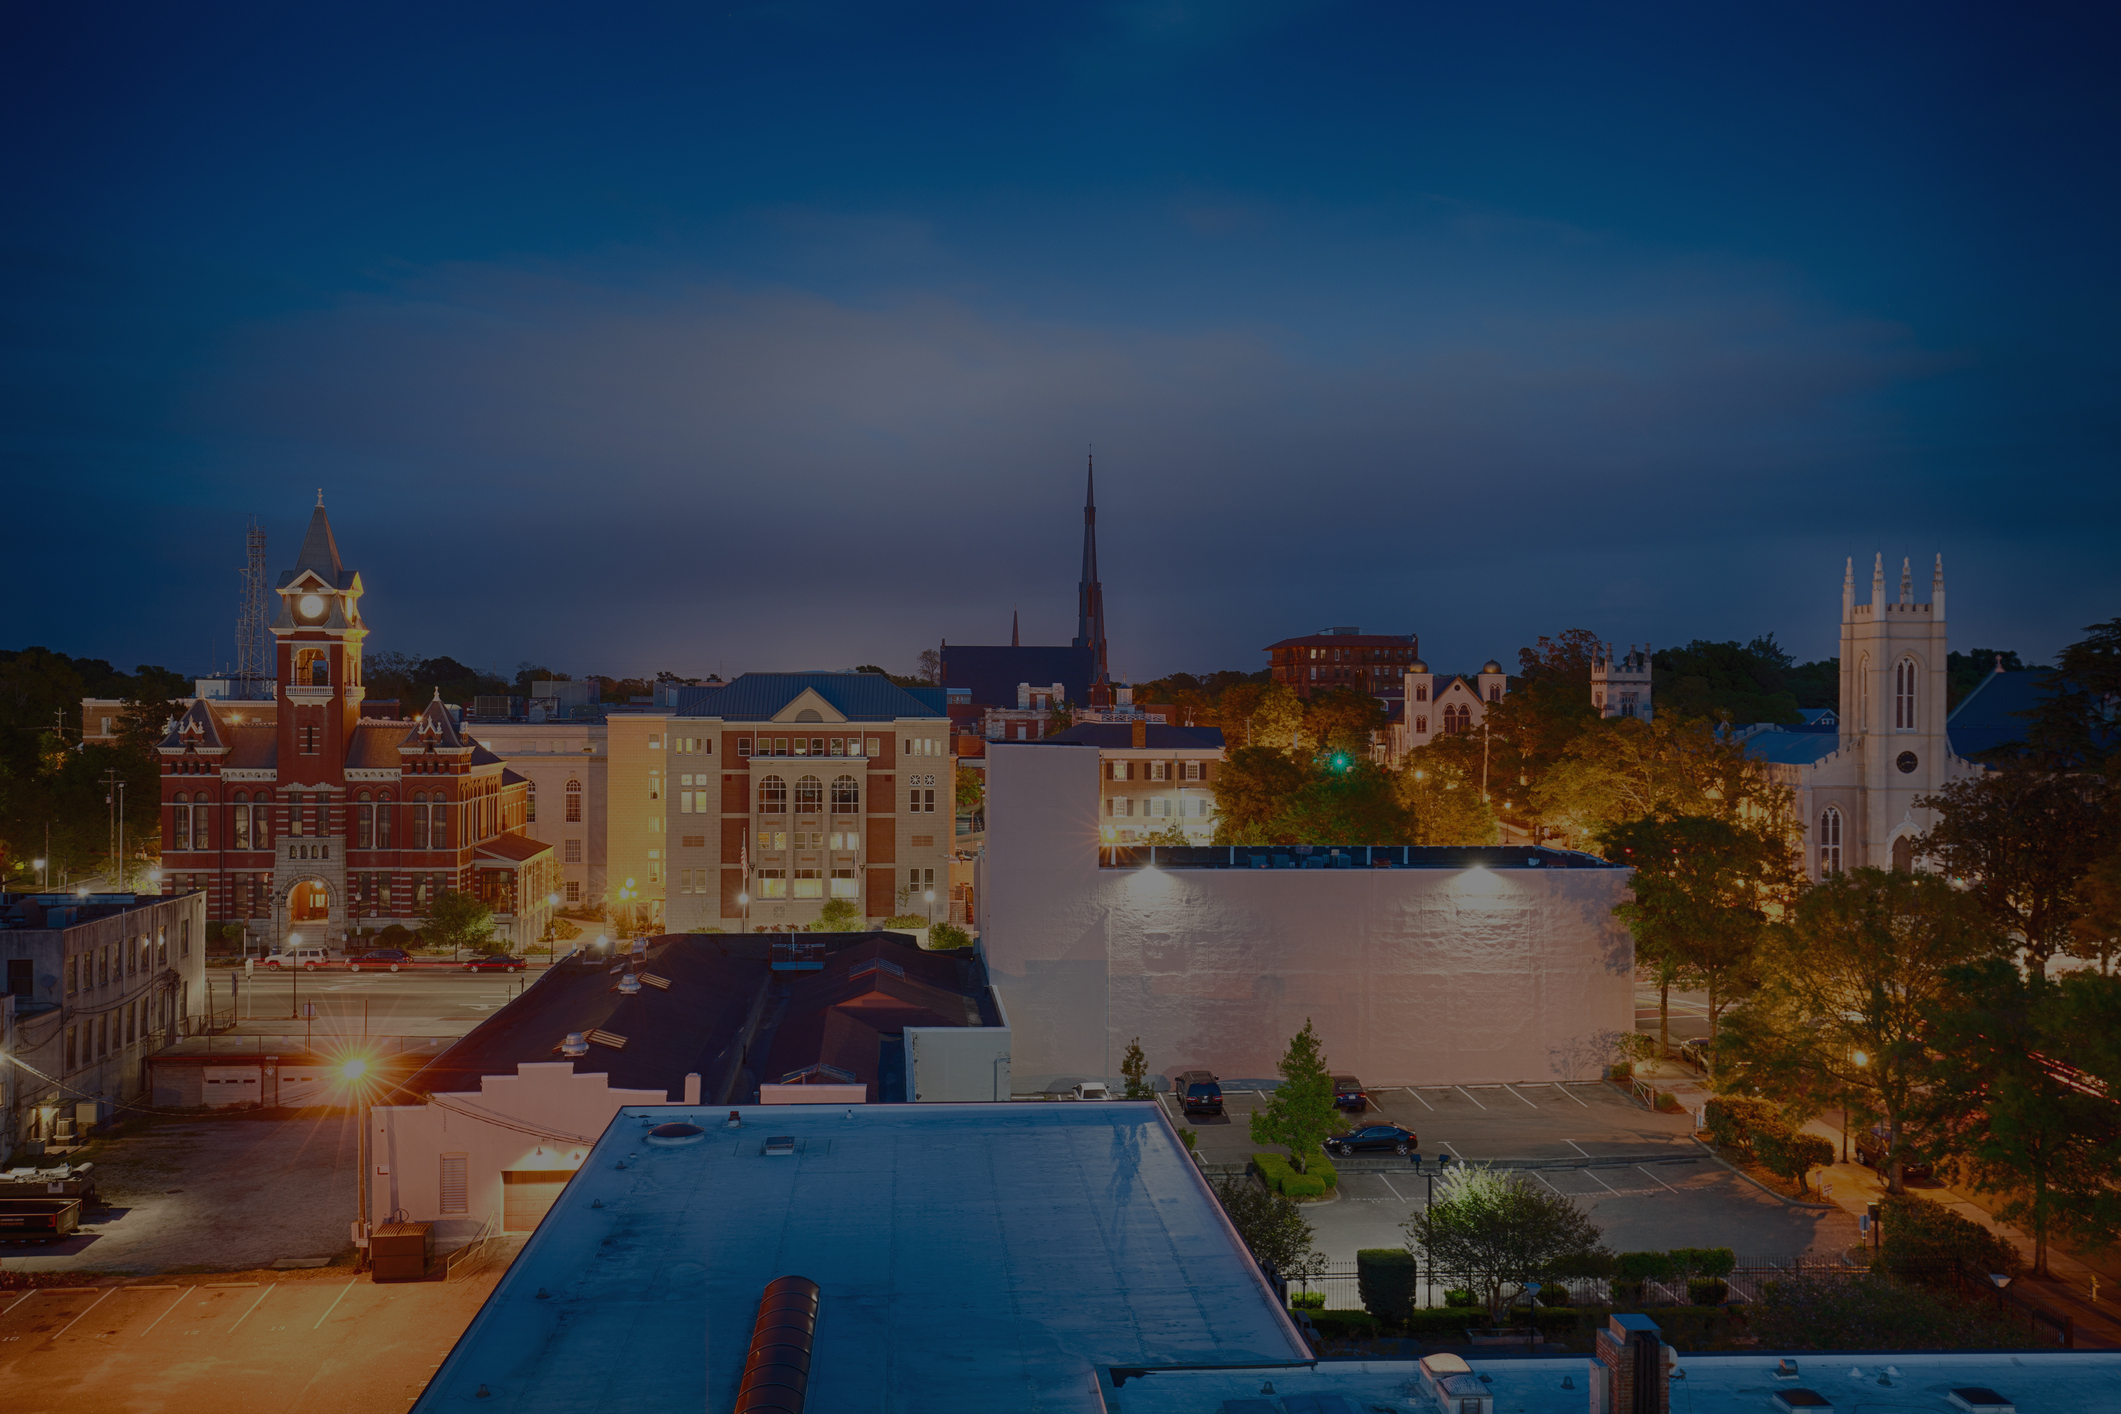 Downtown Wilmington, NC at night.